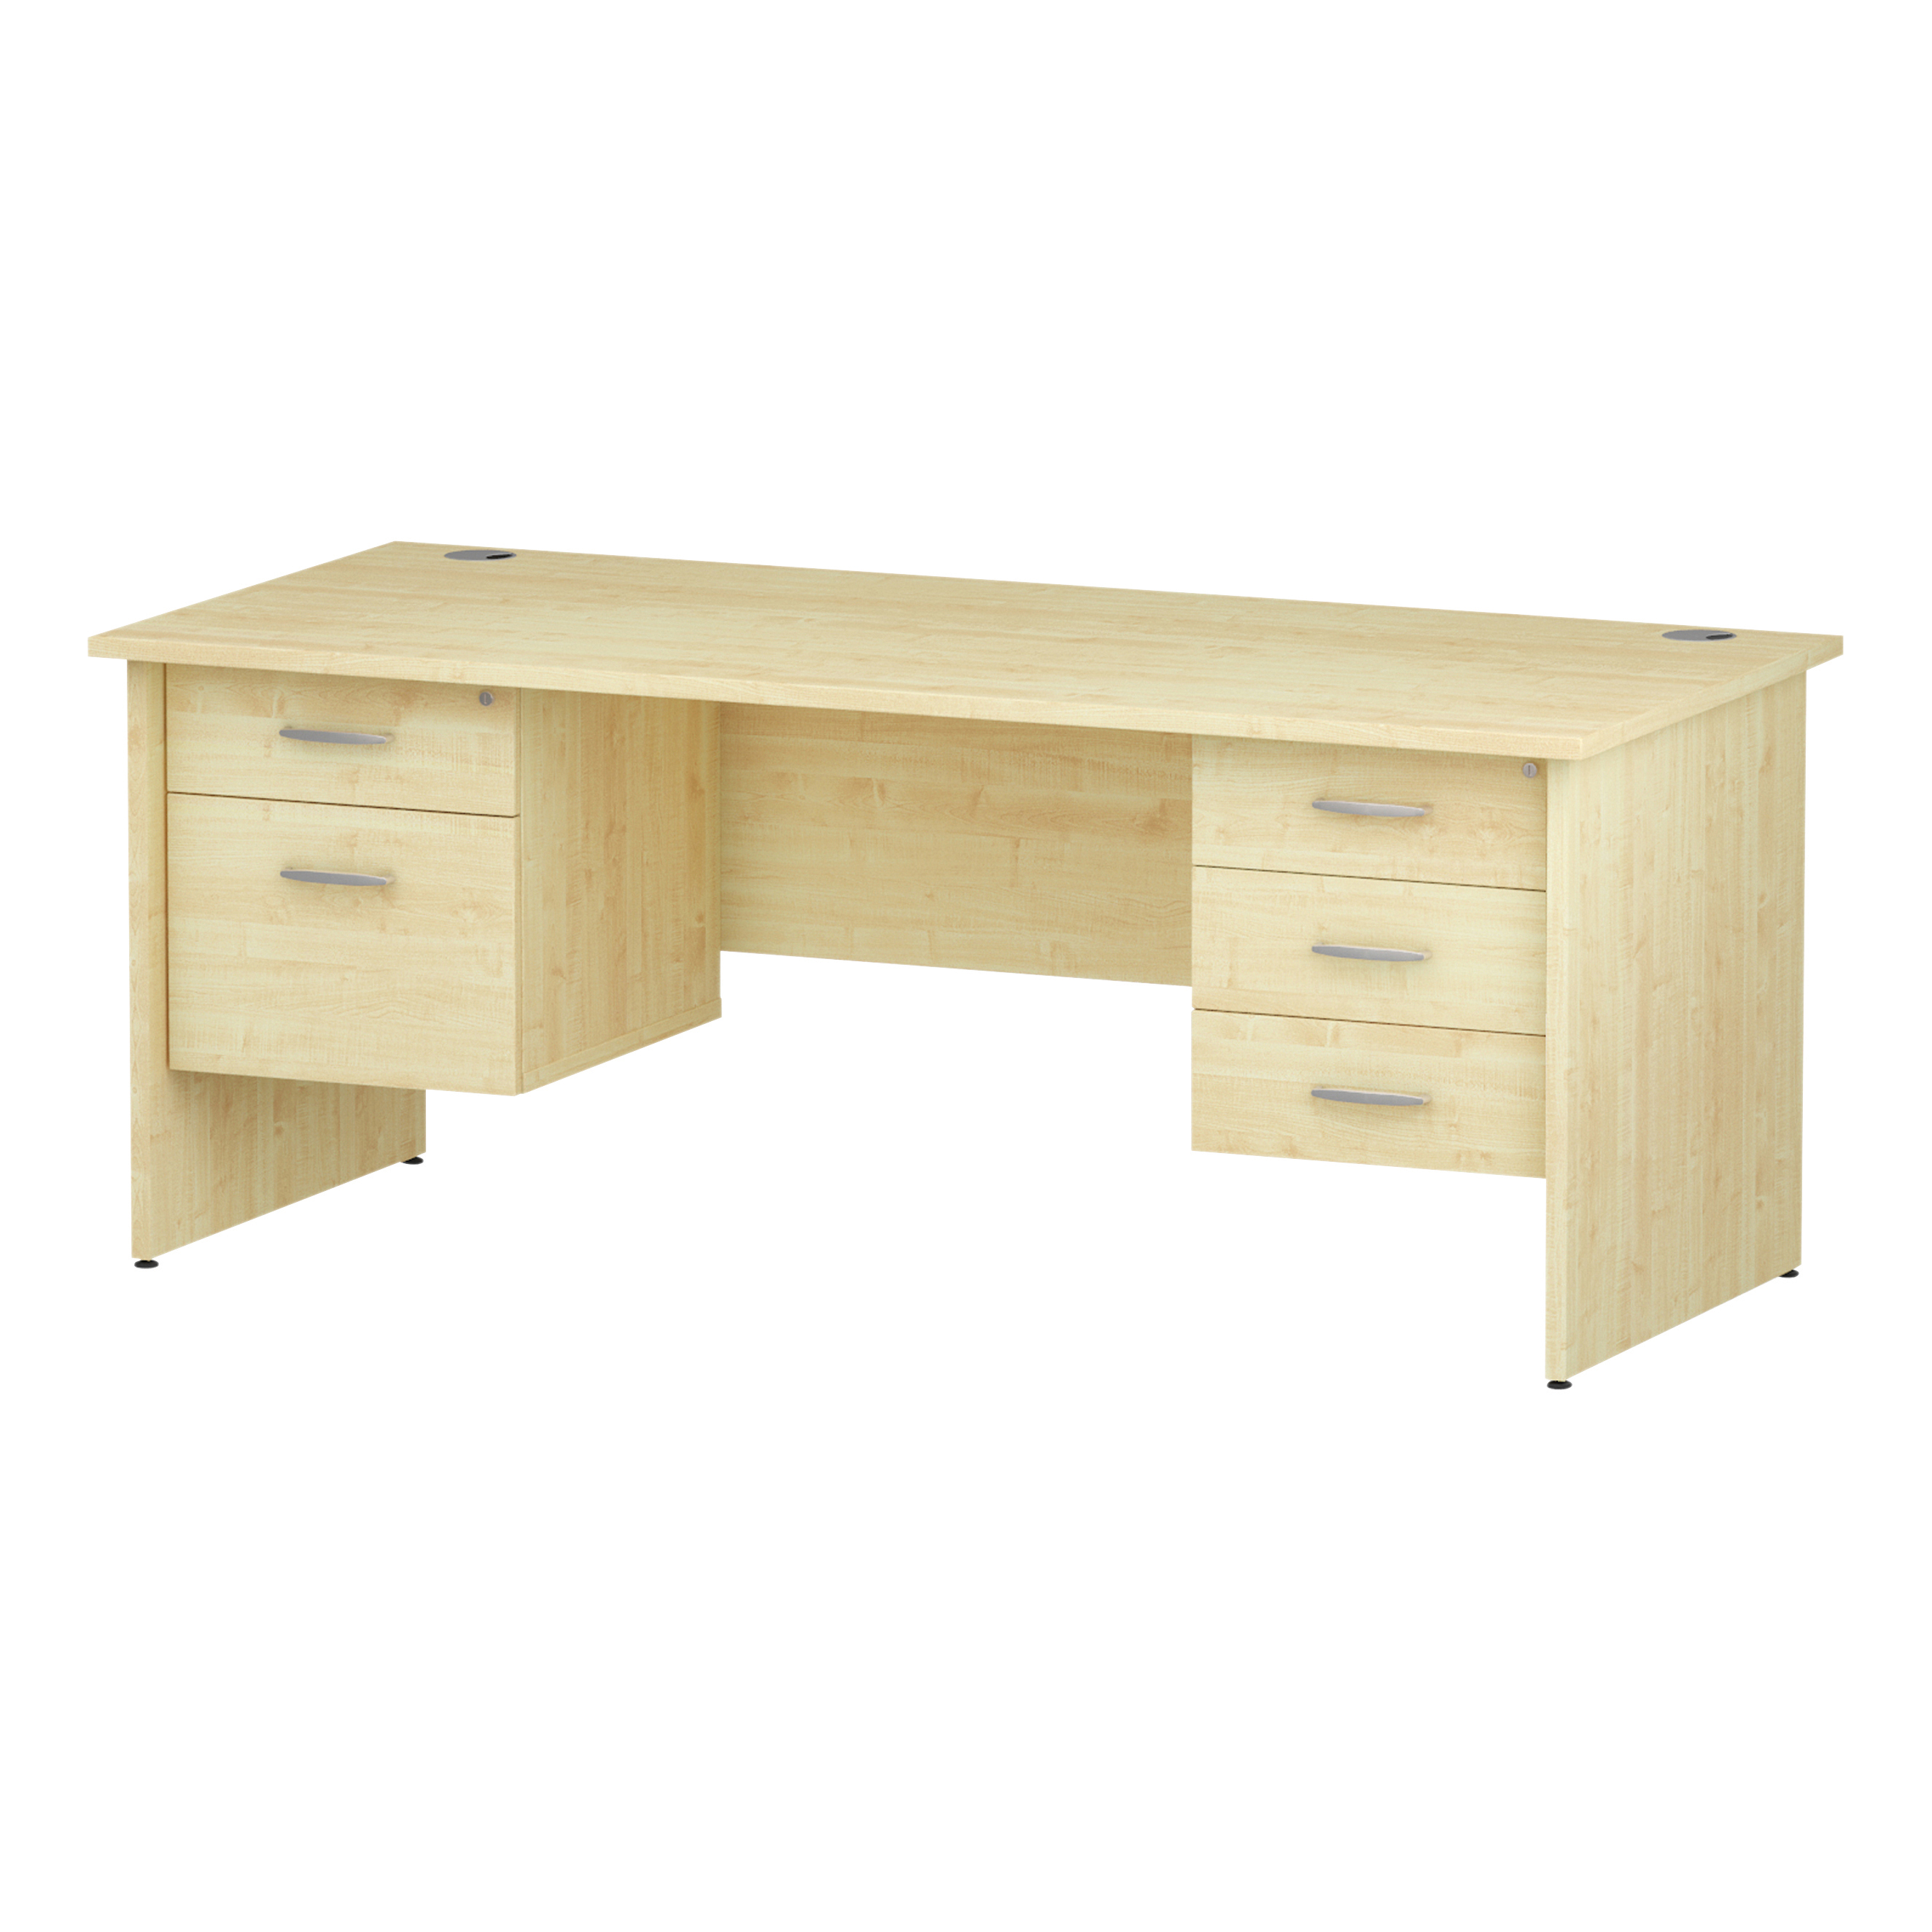 Trexus Rectangular Desk Panel End Leg 1800x800mm Double Fixed Pedestal 2&3 Drawers Maple Ref I002495